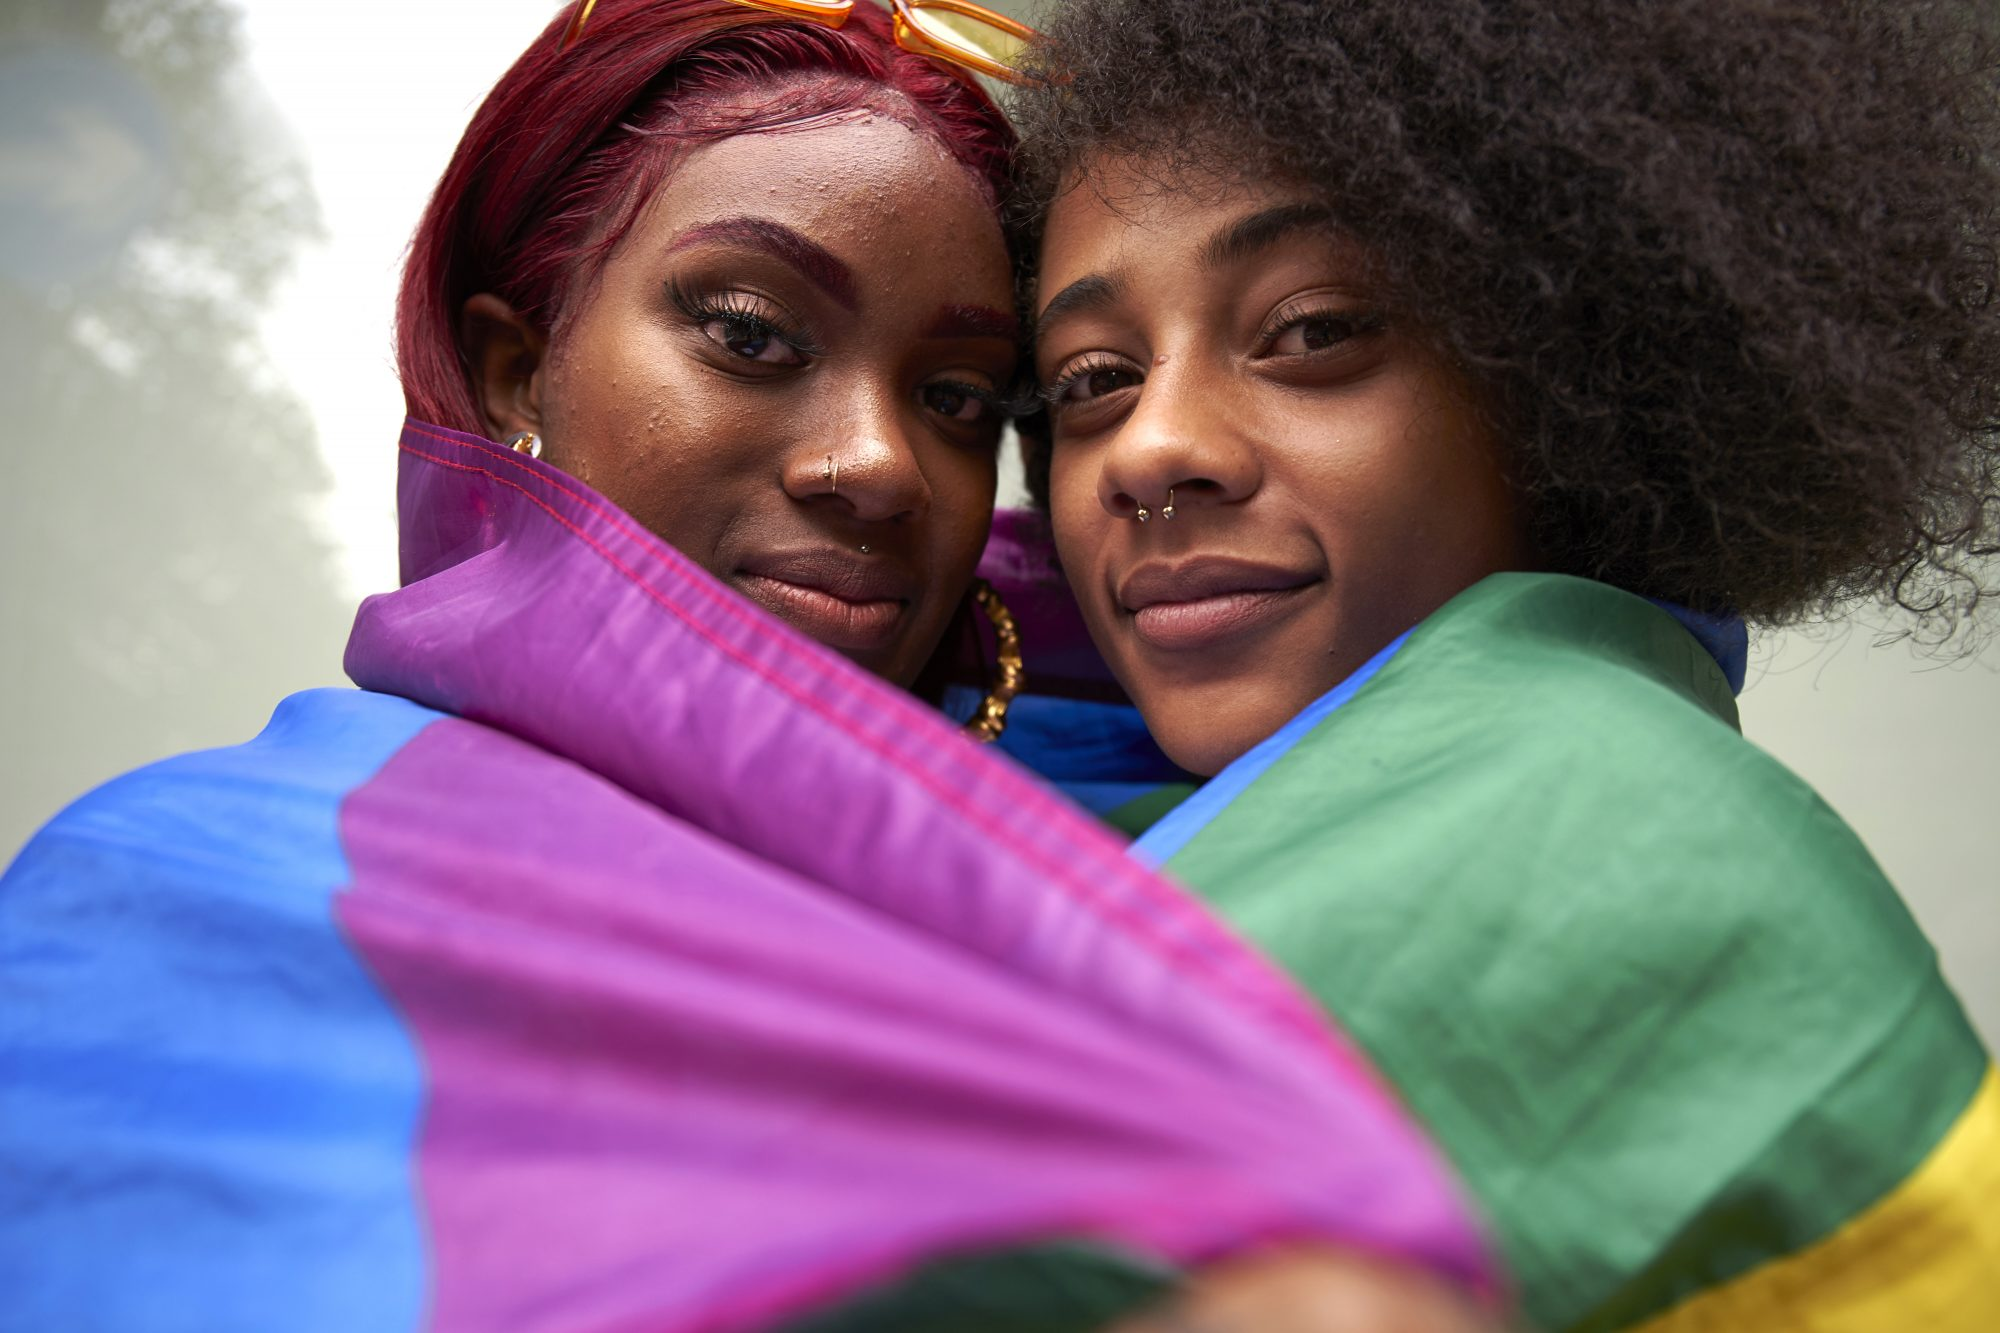 how to support LGBTQ youth